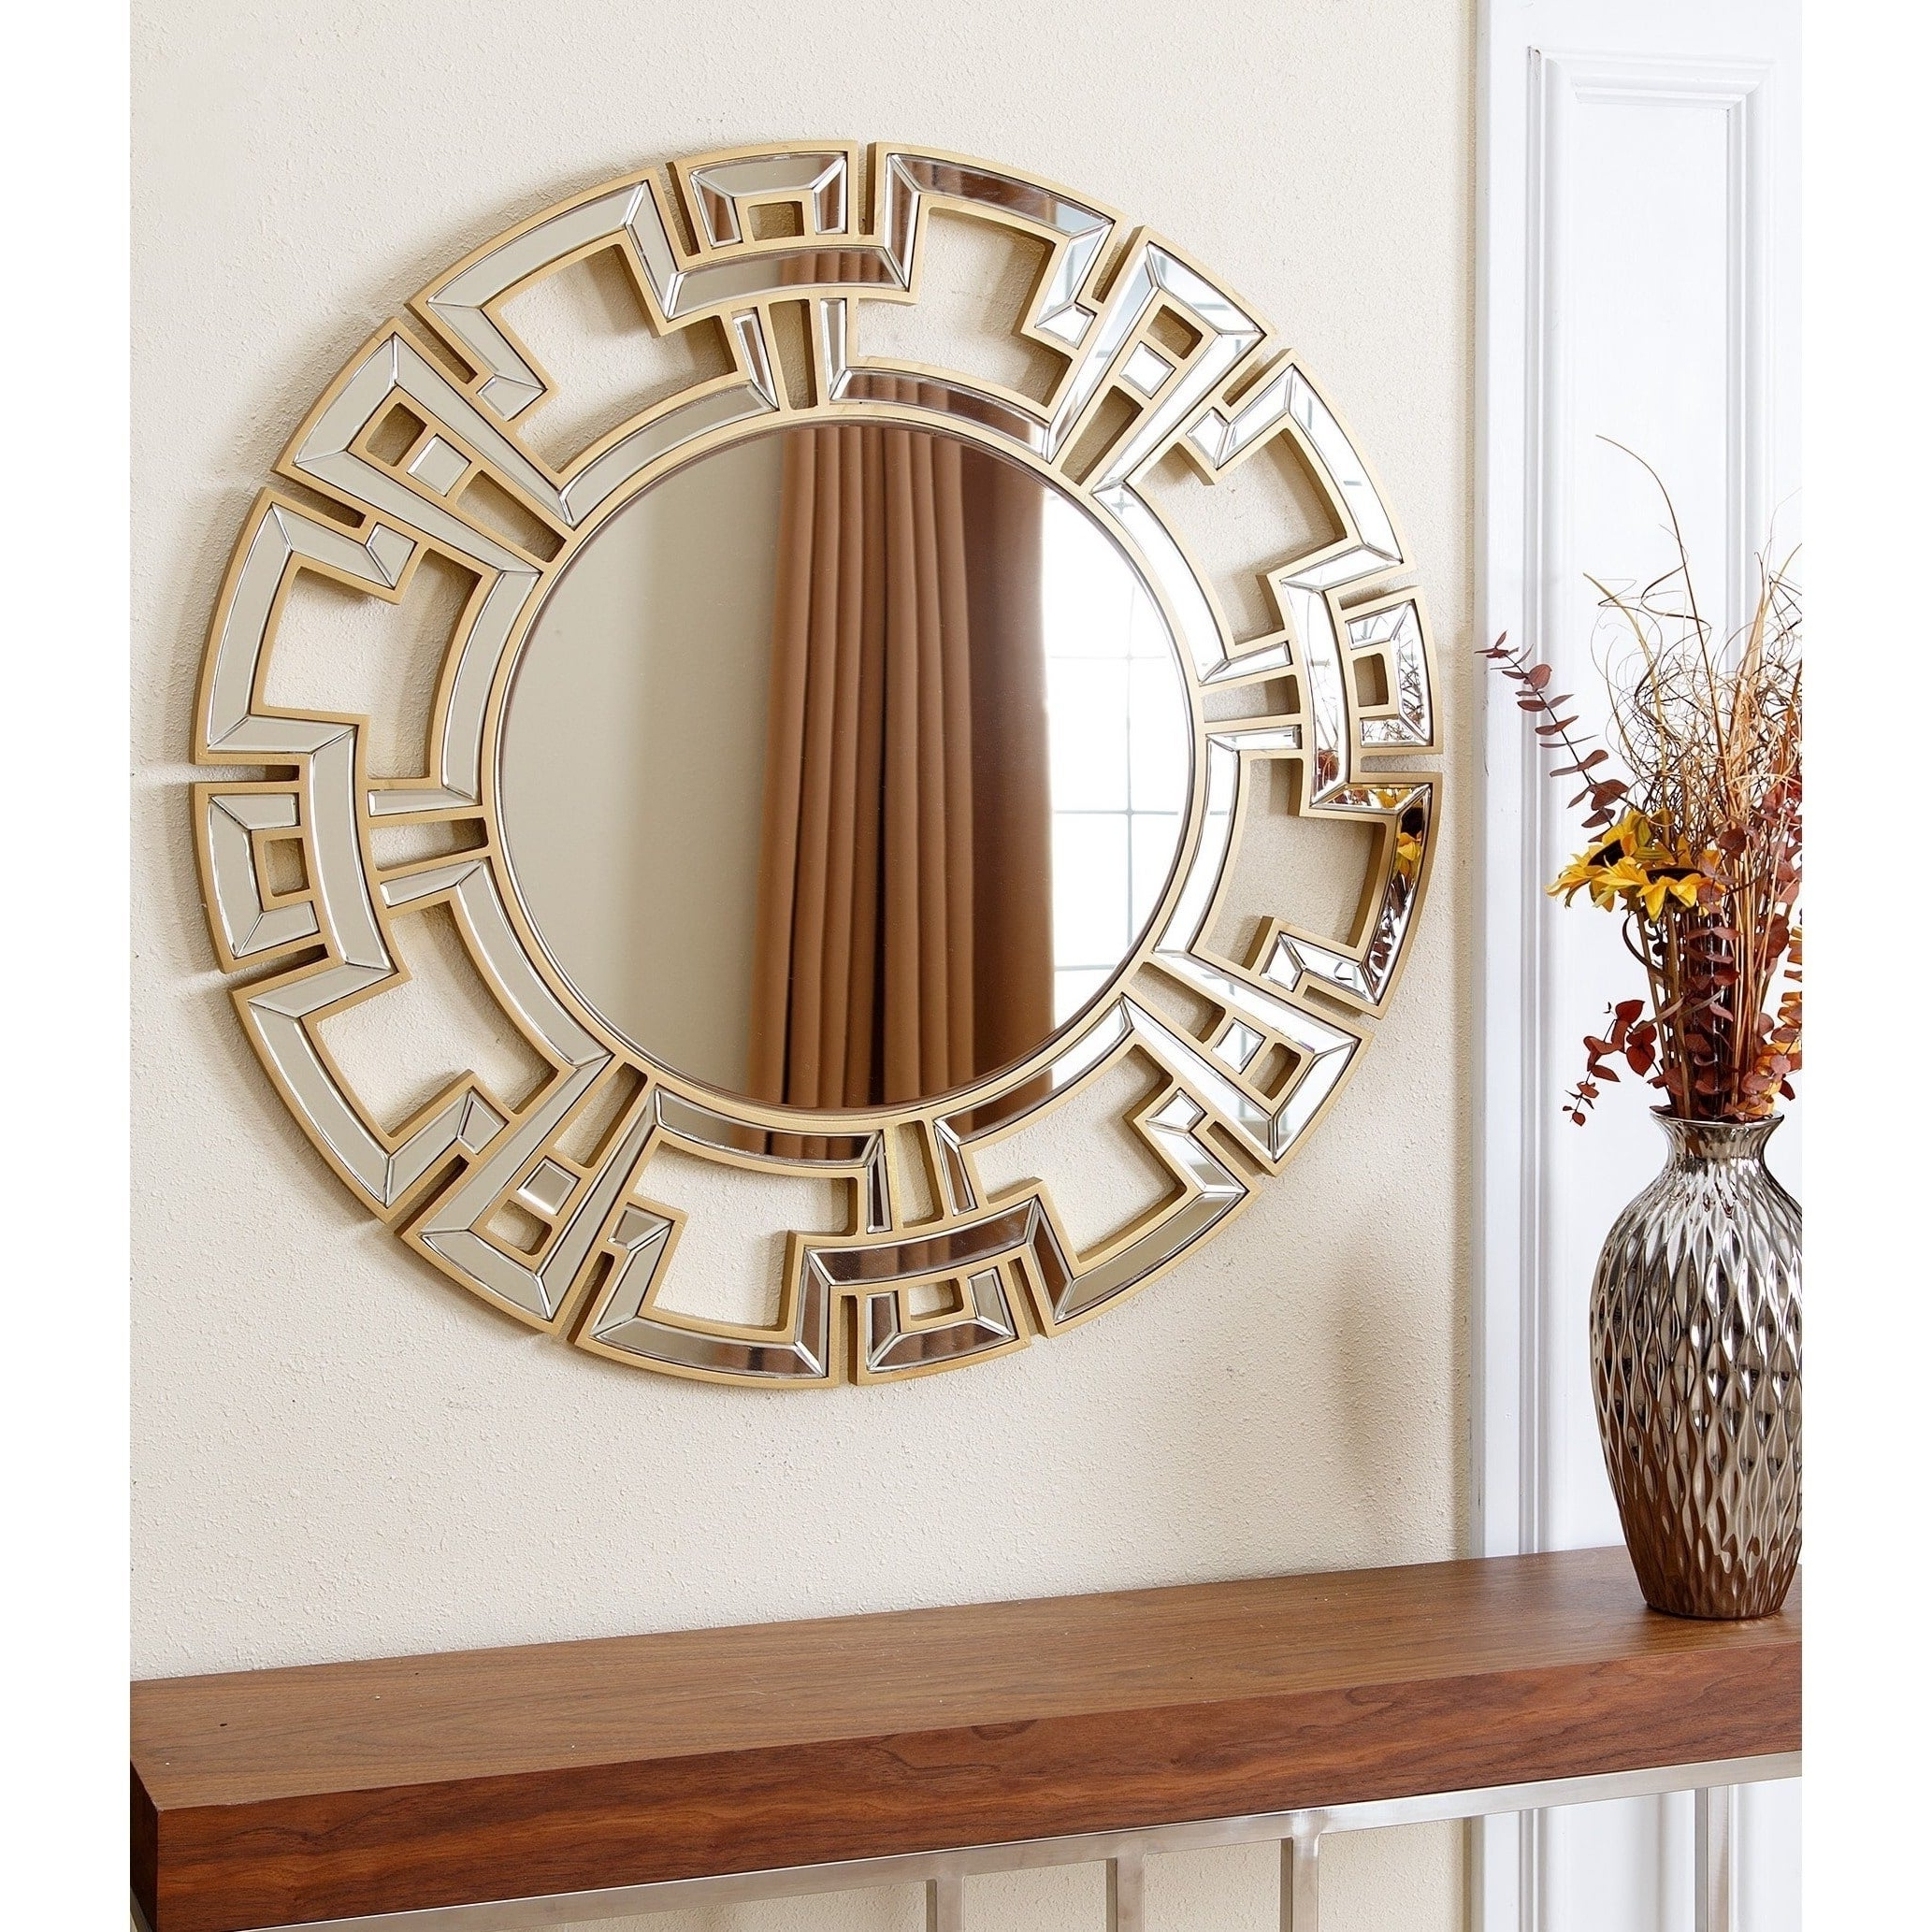 Popular Entryway Wall Mirrors Throughout Details About Abbyson Wall Mirror Accent Gold Wood Round Crafted Entryway Mounted Geometric (View 15 of 20)